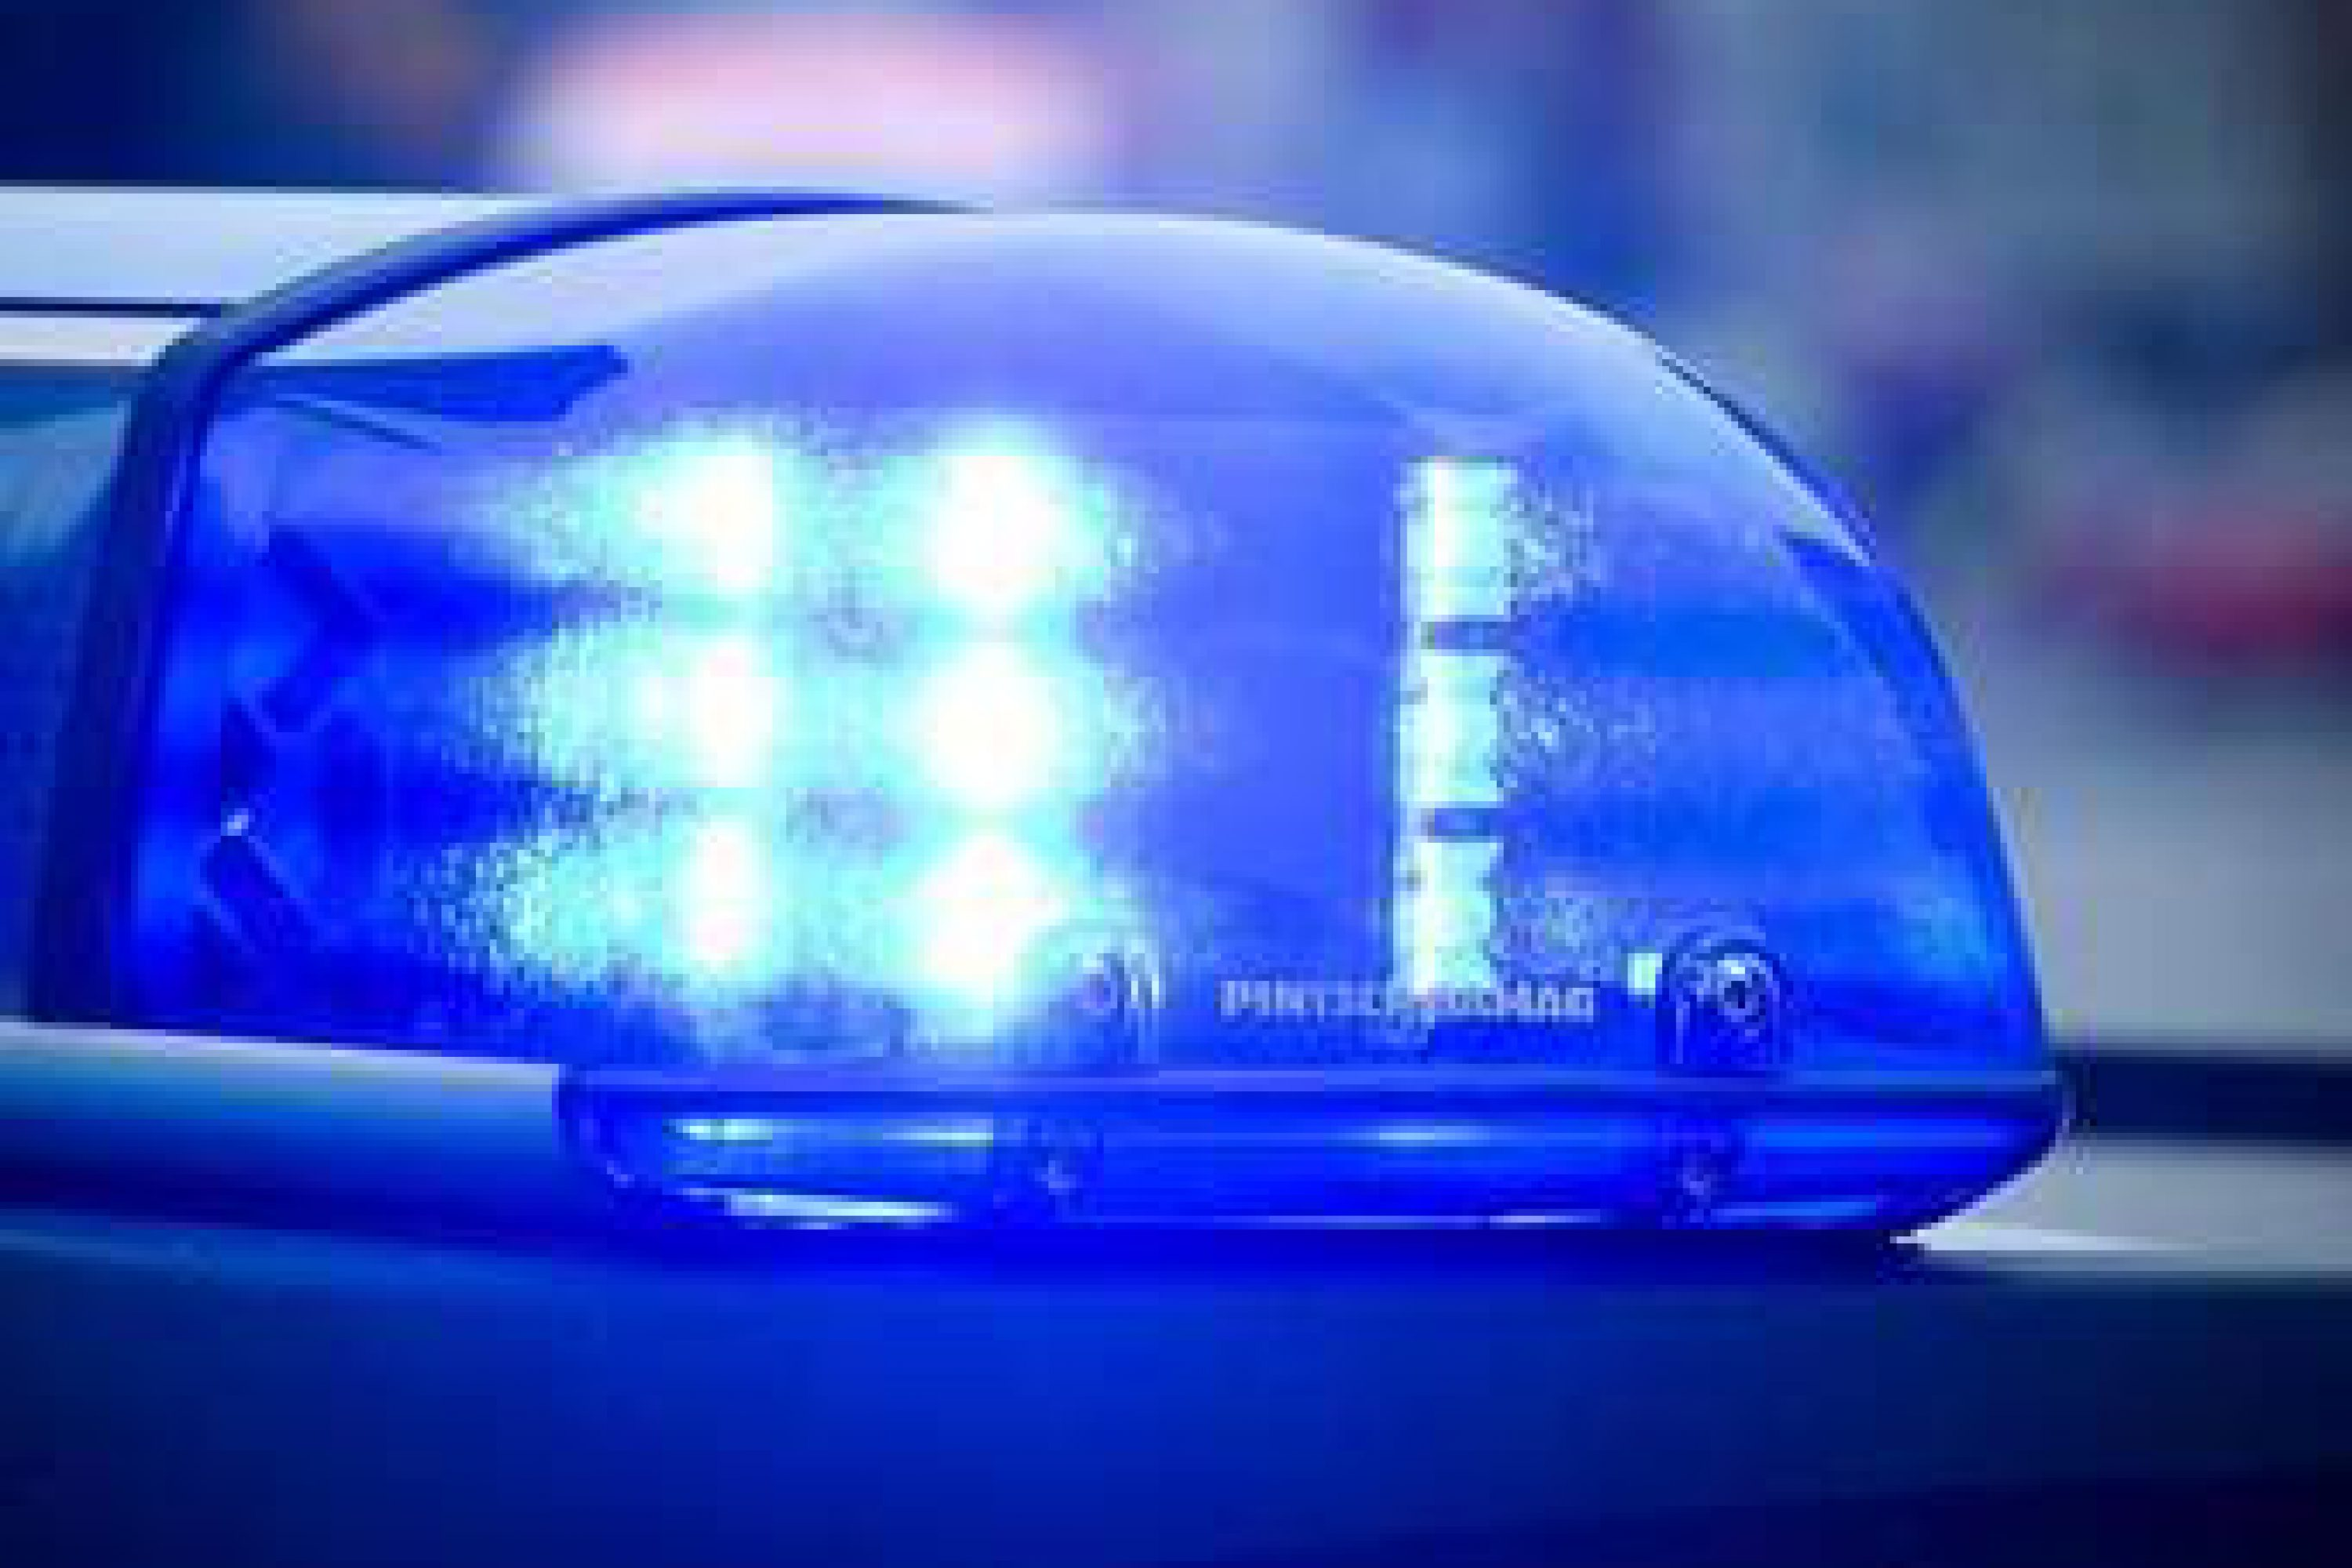 Polizei-Update: Do, 06.06.19